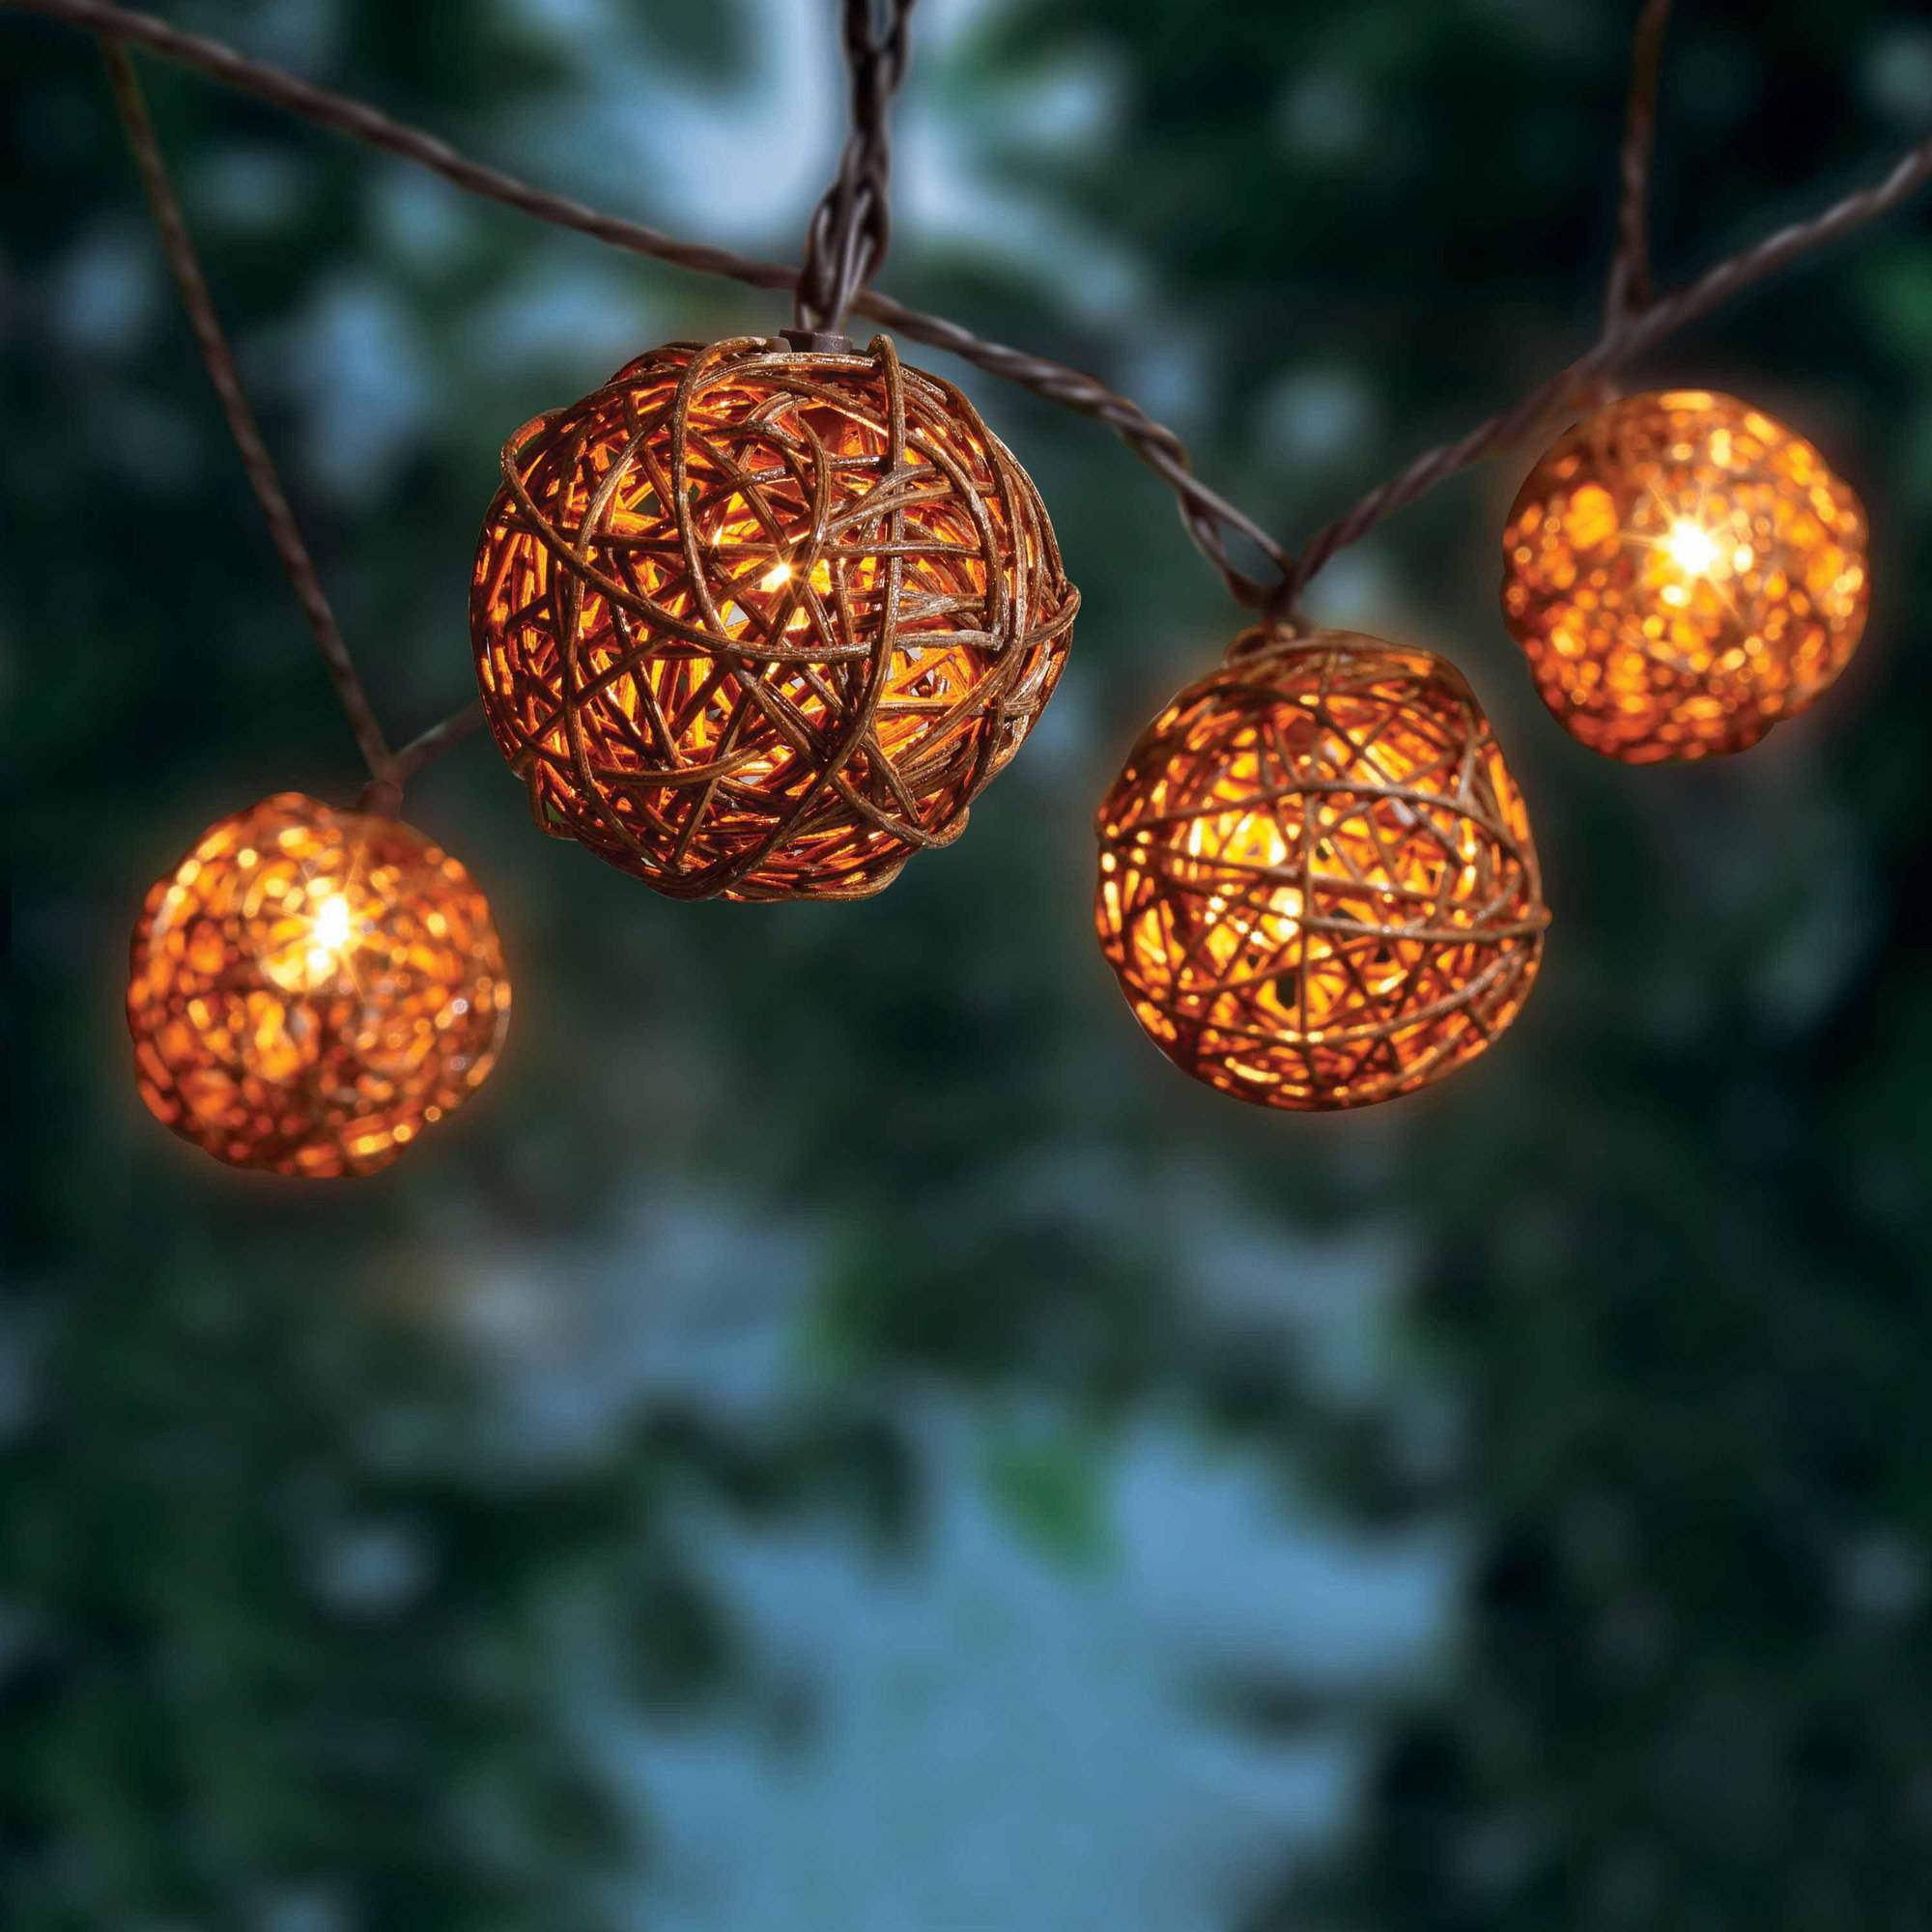 Better Homes and Gardens Wicker Ball Lights, 20 Count